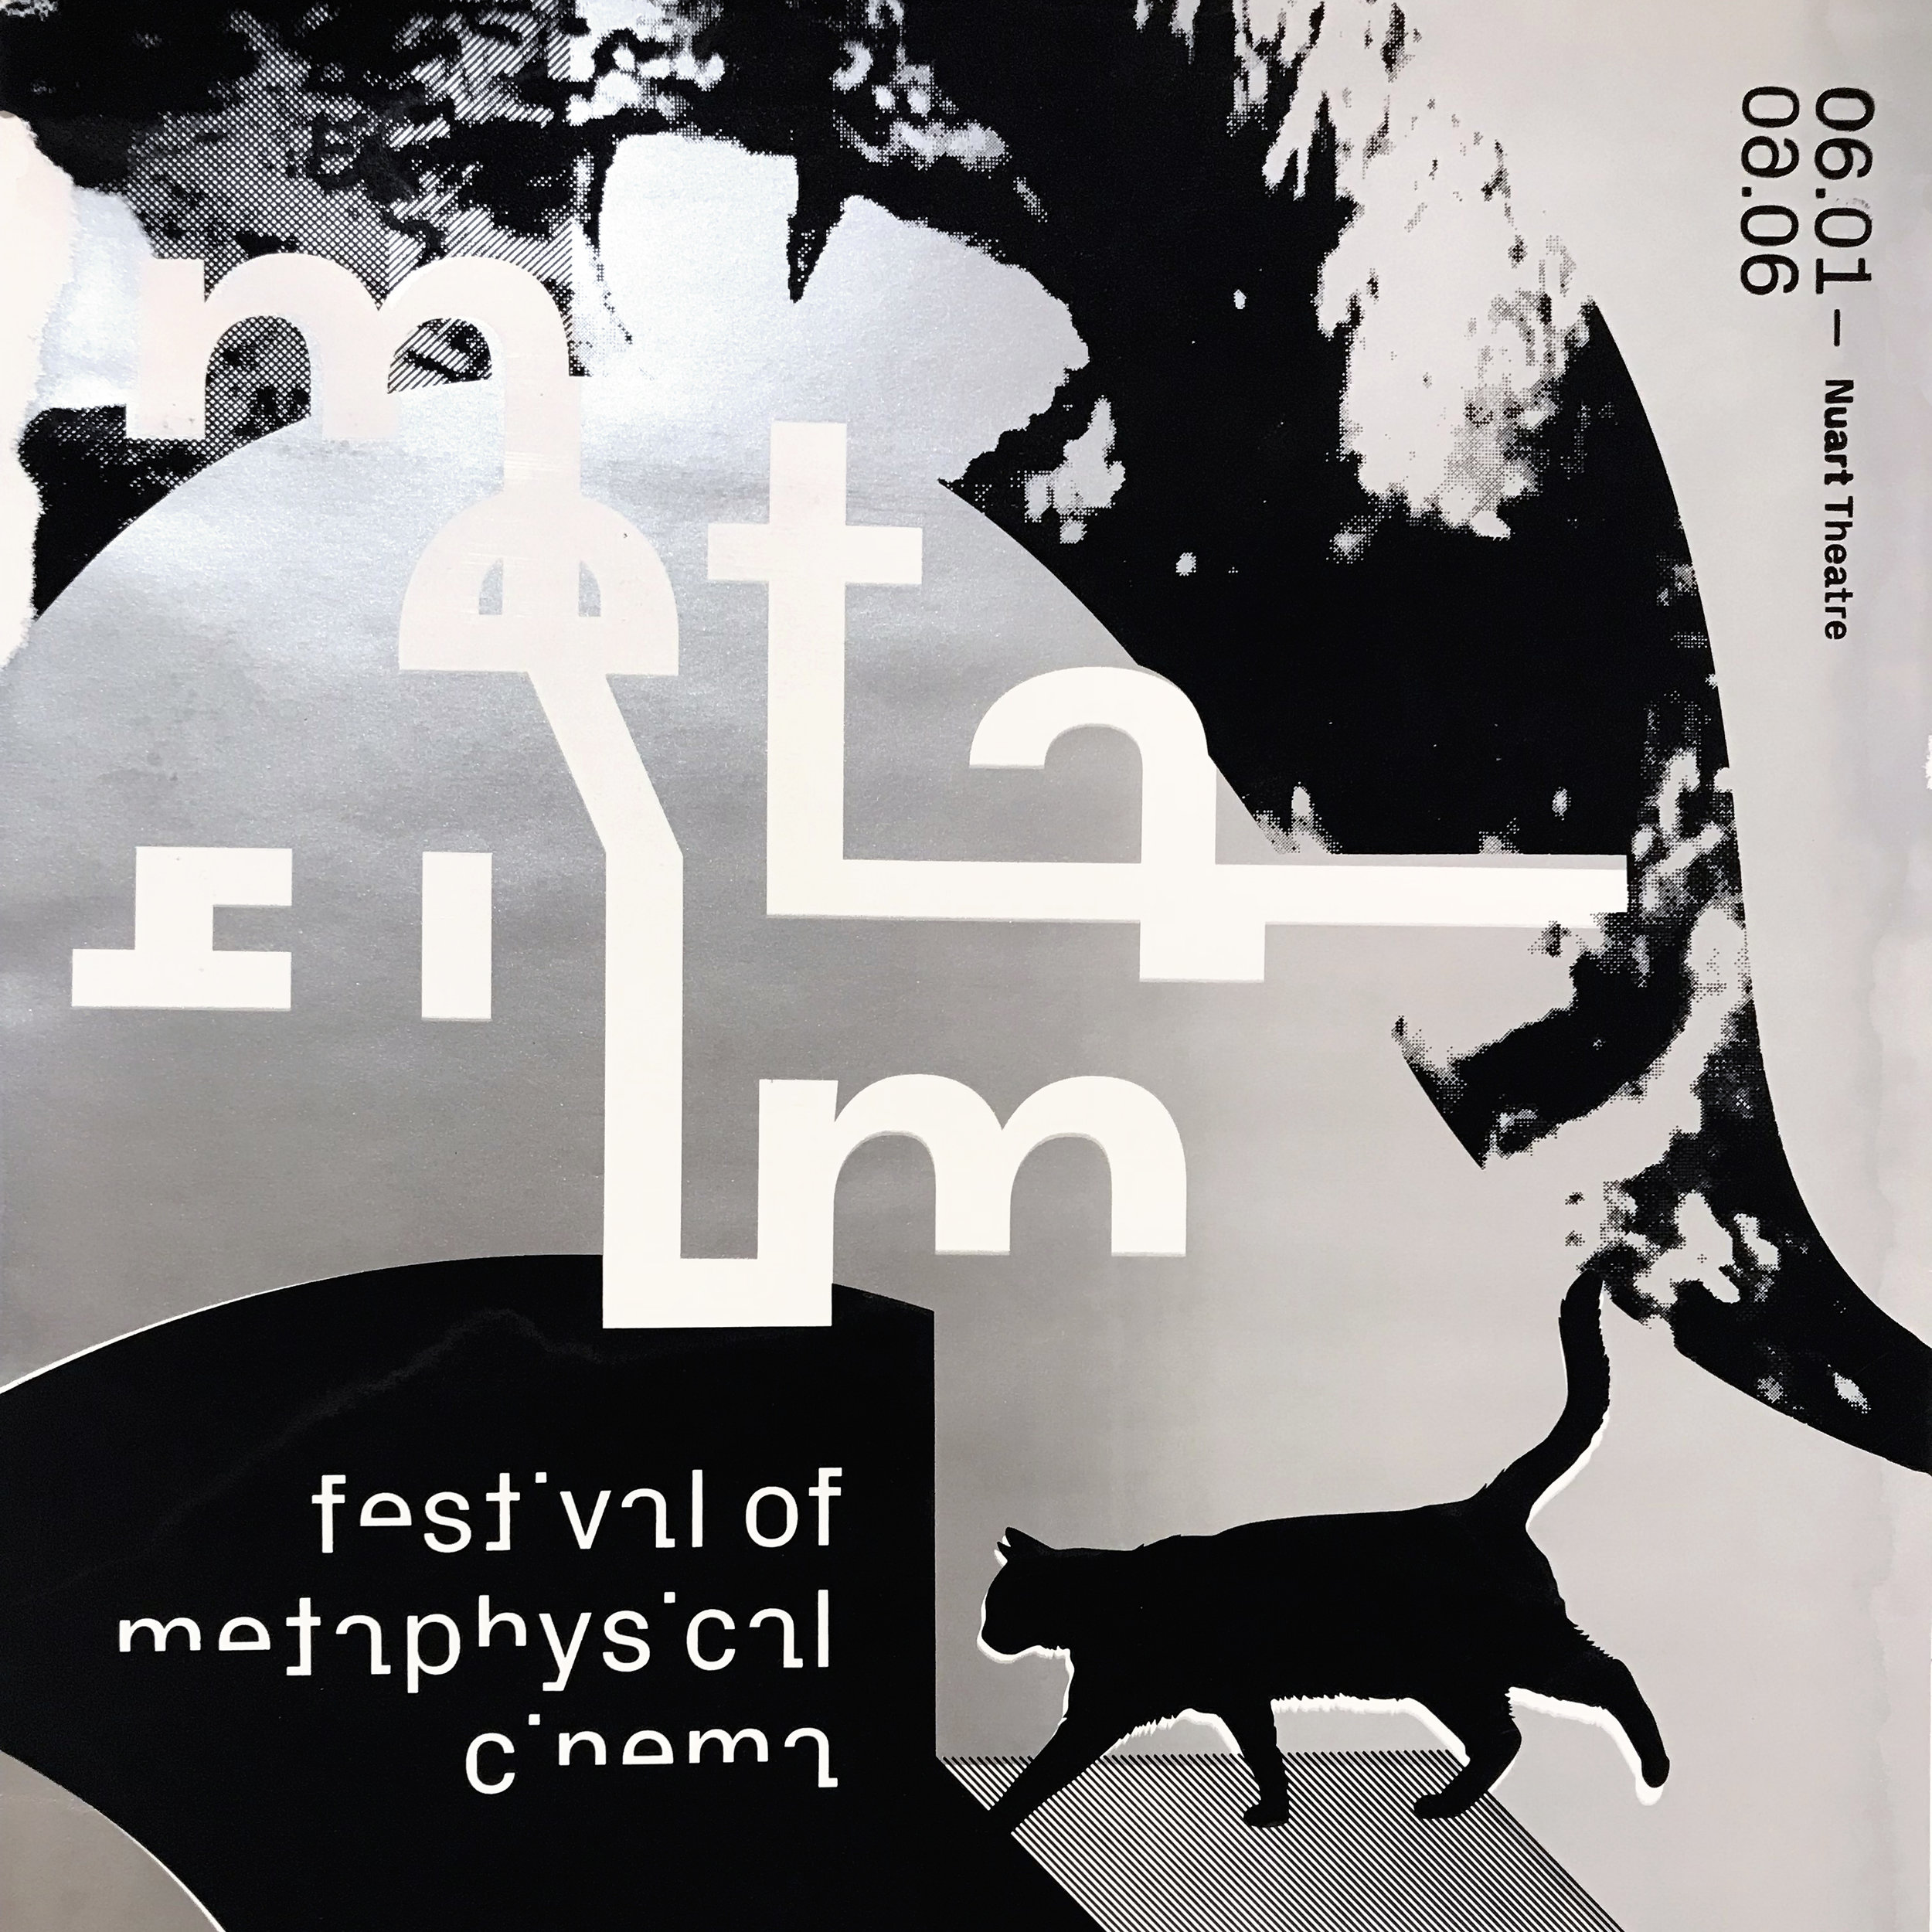 Detail of a silkscreen printed poster with metallic inks for  Metafilm: a Festival of Metaphysical Cinema  (2018)